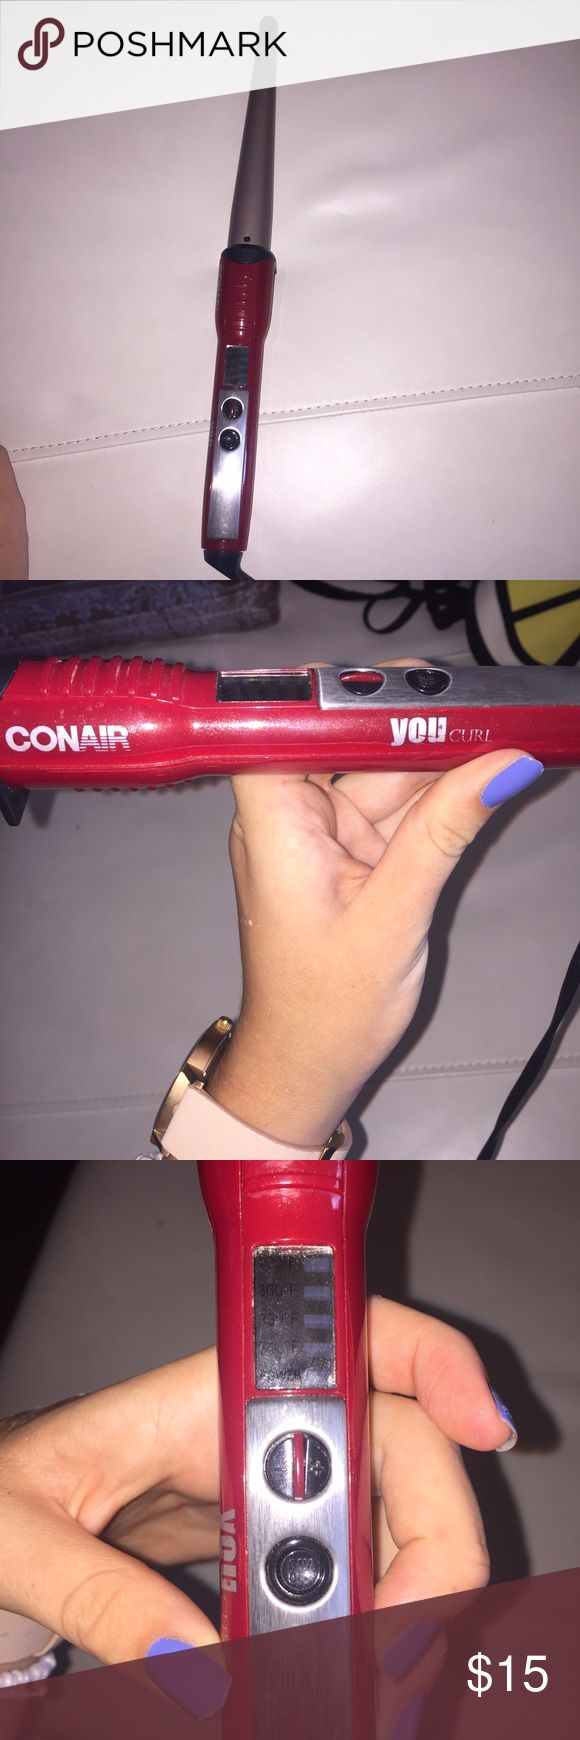 CONAIR curling wand GENTLY USED con air curling wand. great woking condition with no defects :) conair Makeup Brushes & Tools